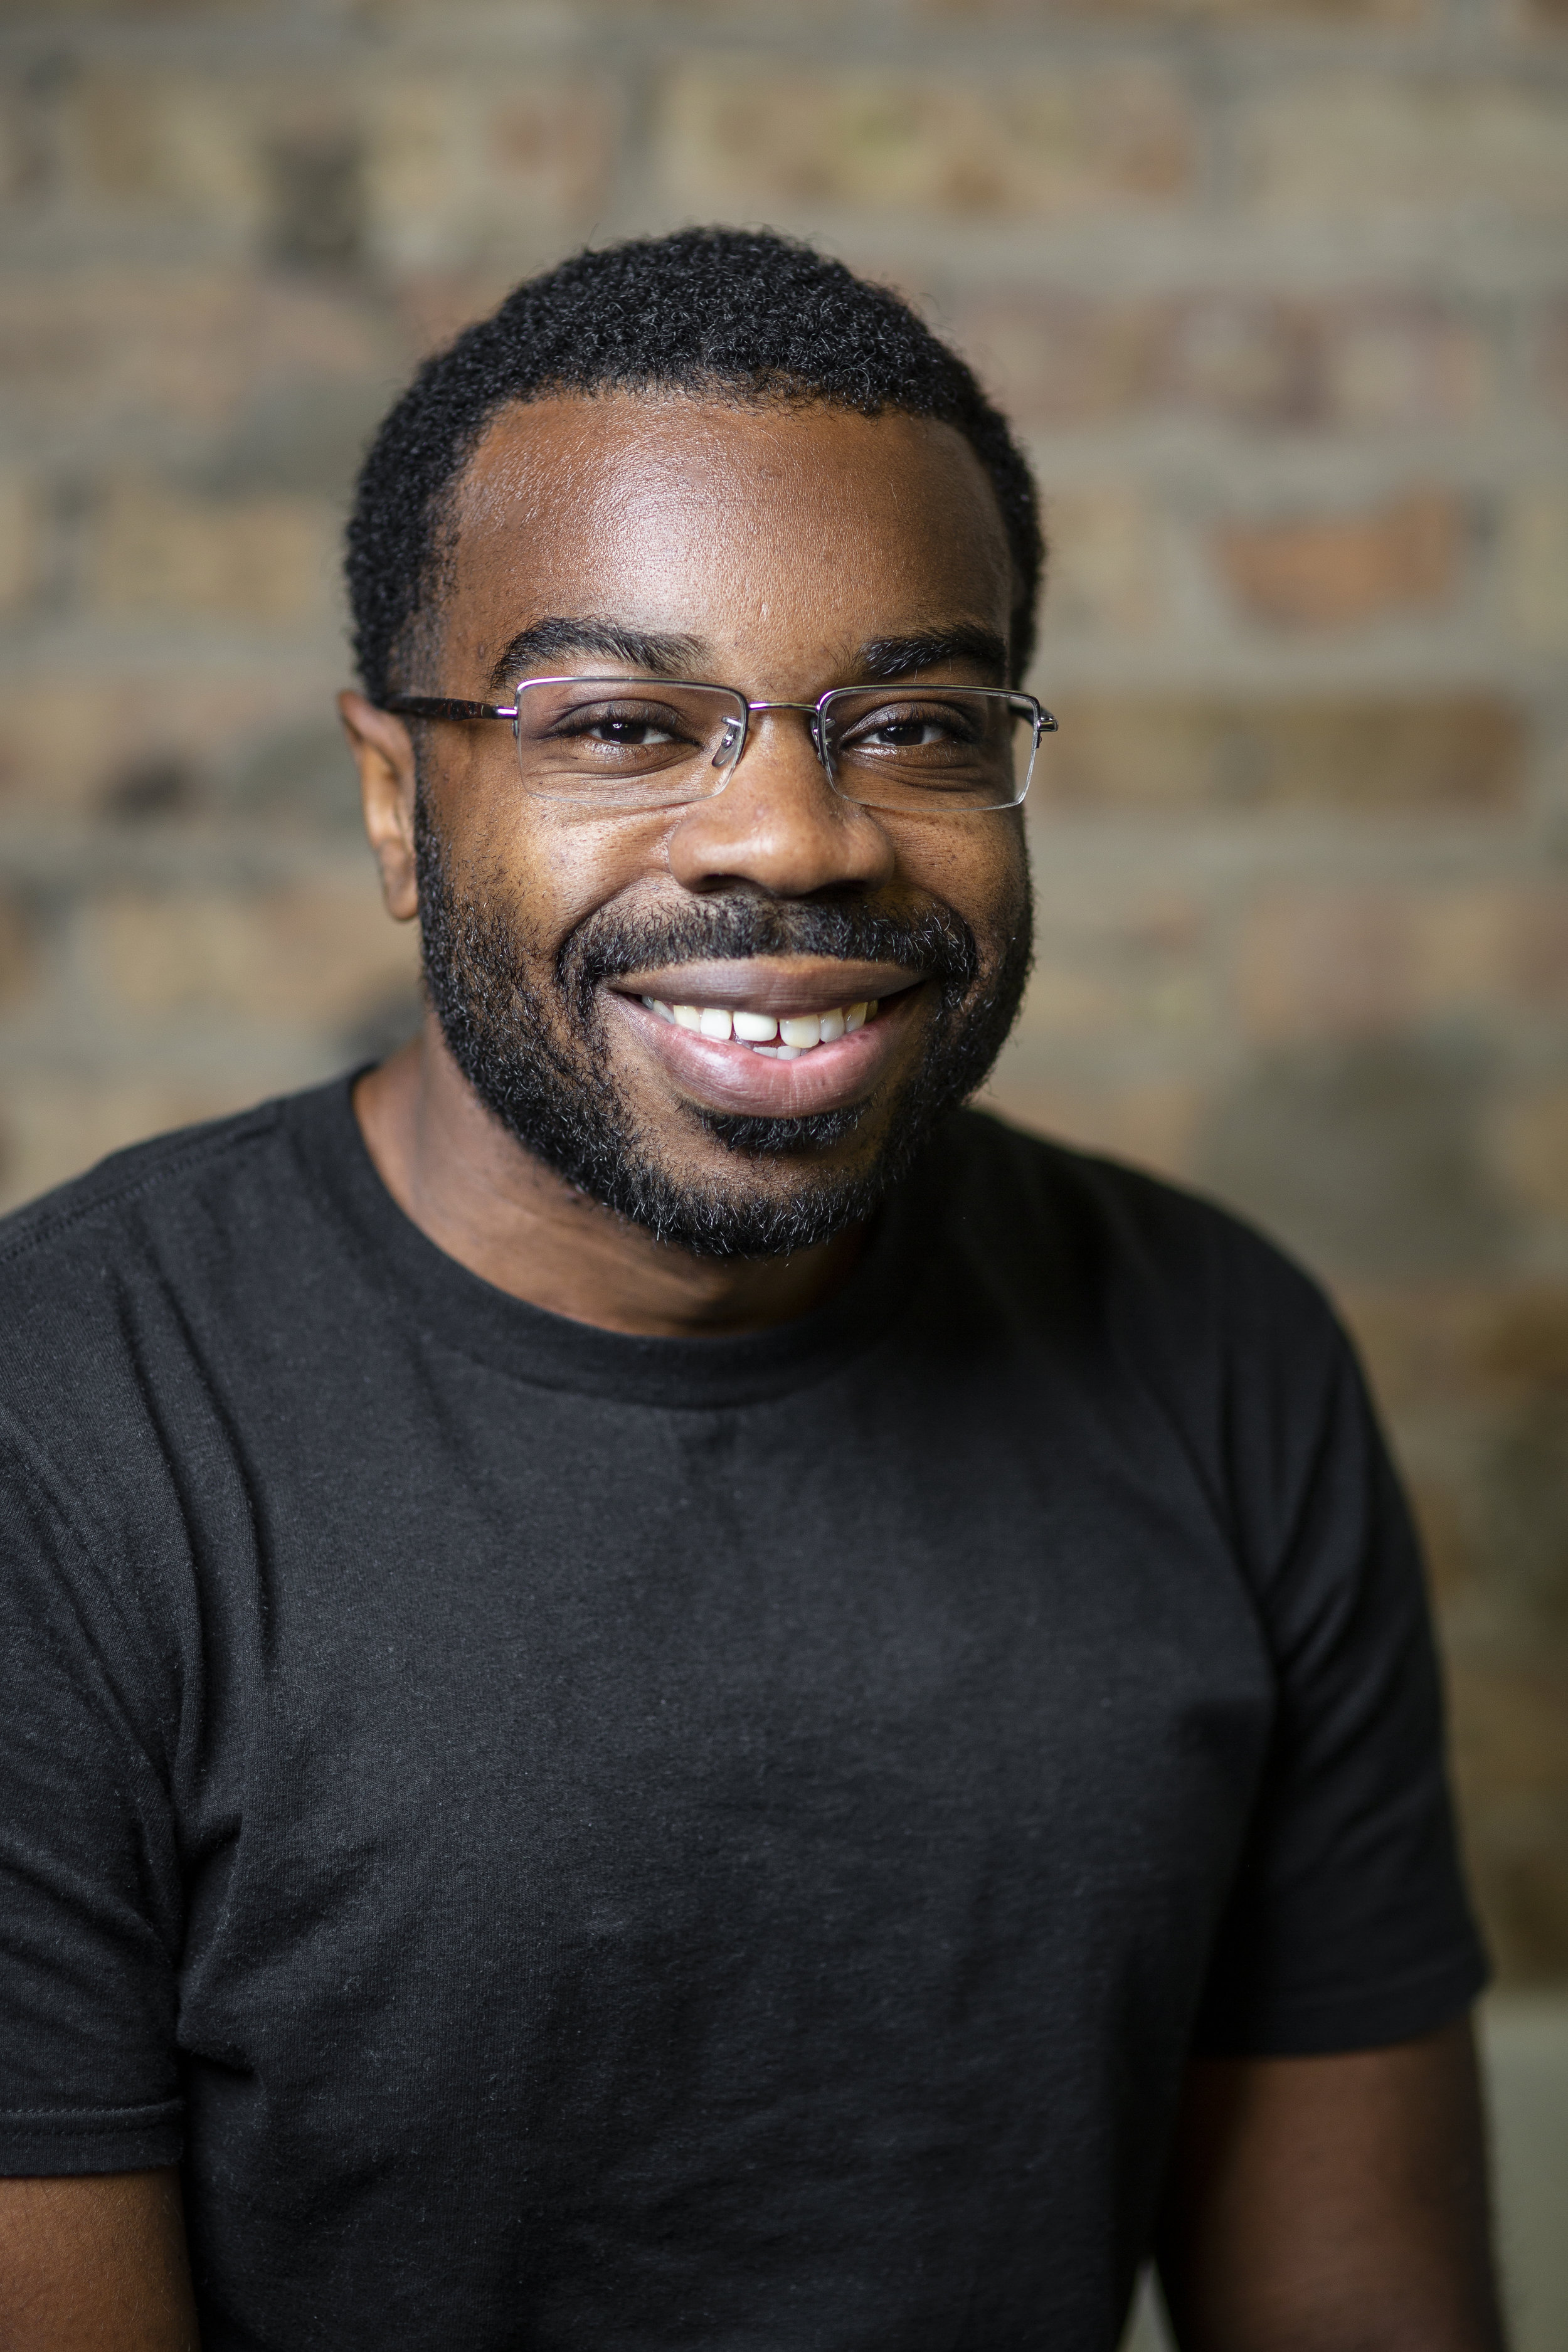 Raised in Chicago, Kenneth J. Johnson Jr. is an artist, photographer, and videographer. His work explores elements of race, gender, politics, equality, and human rights. -